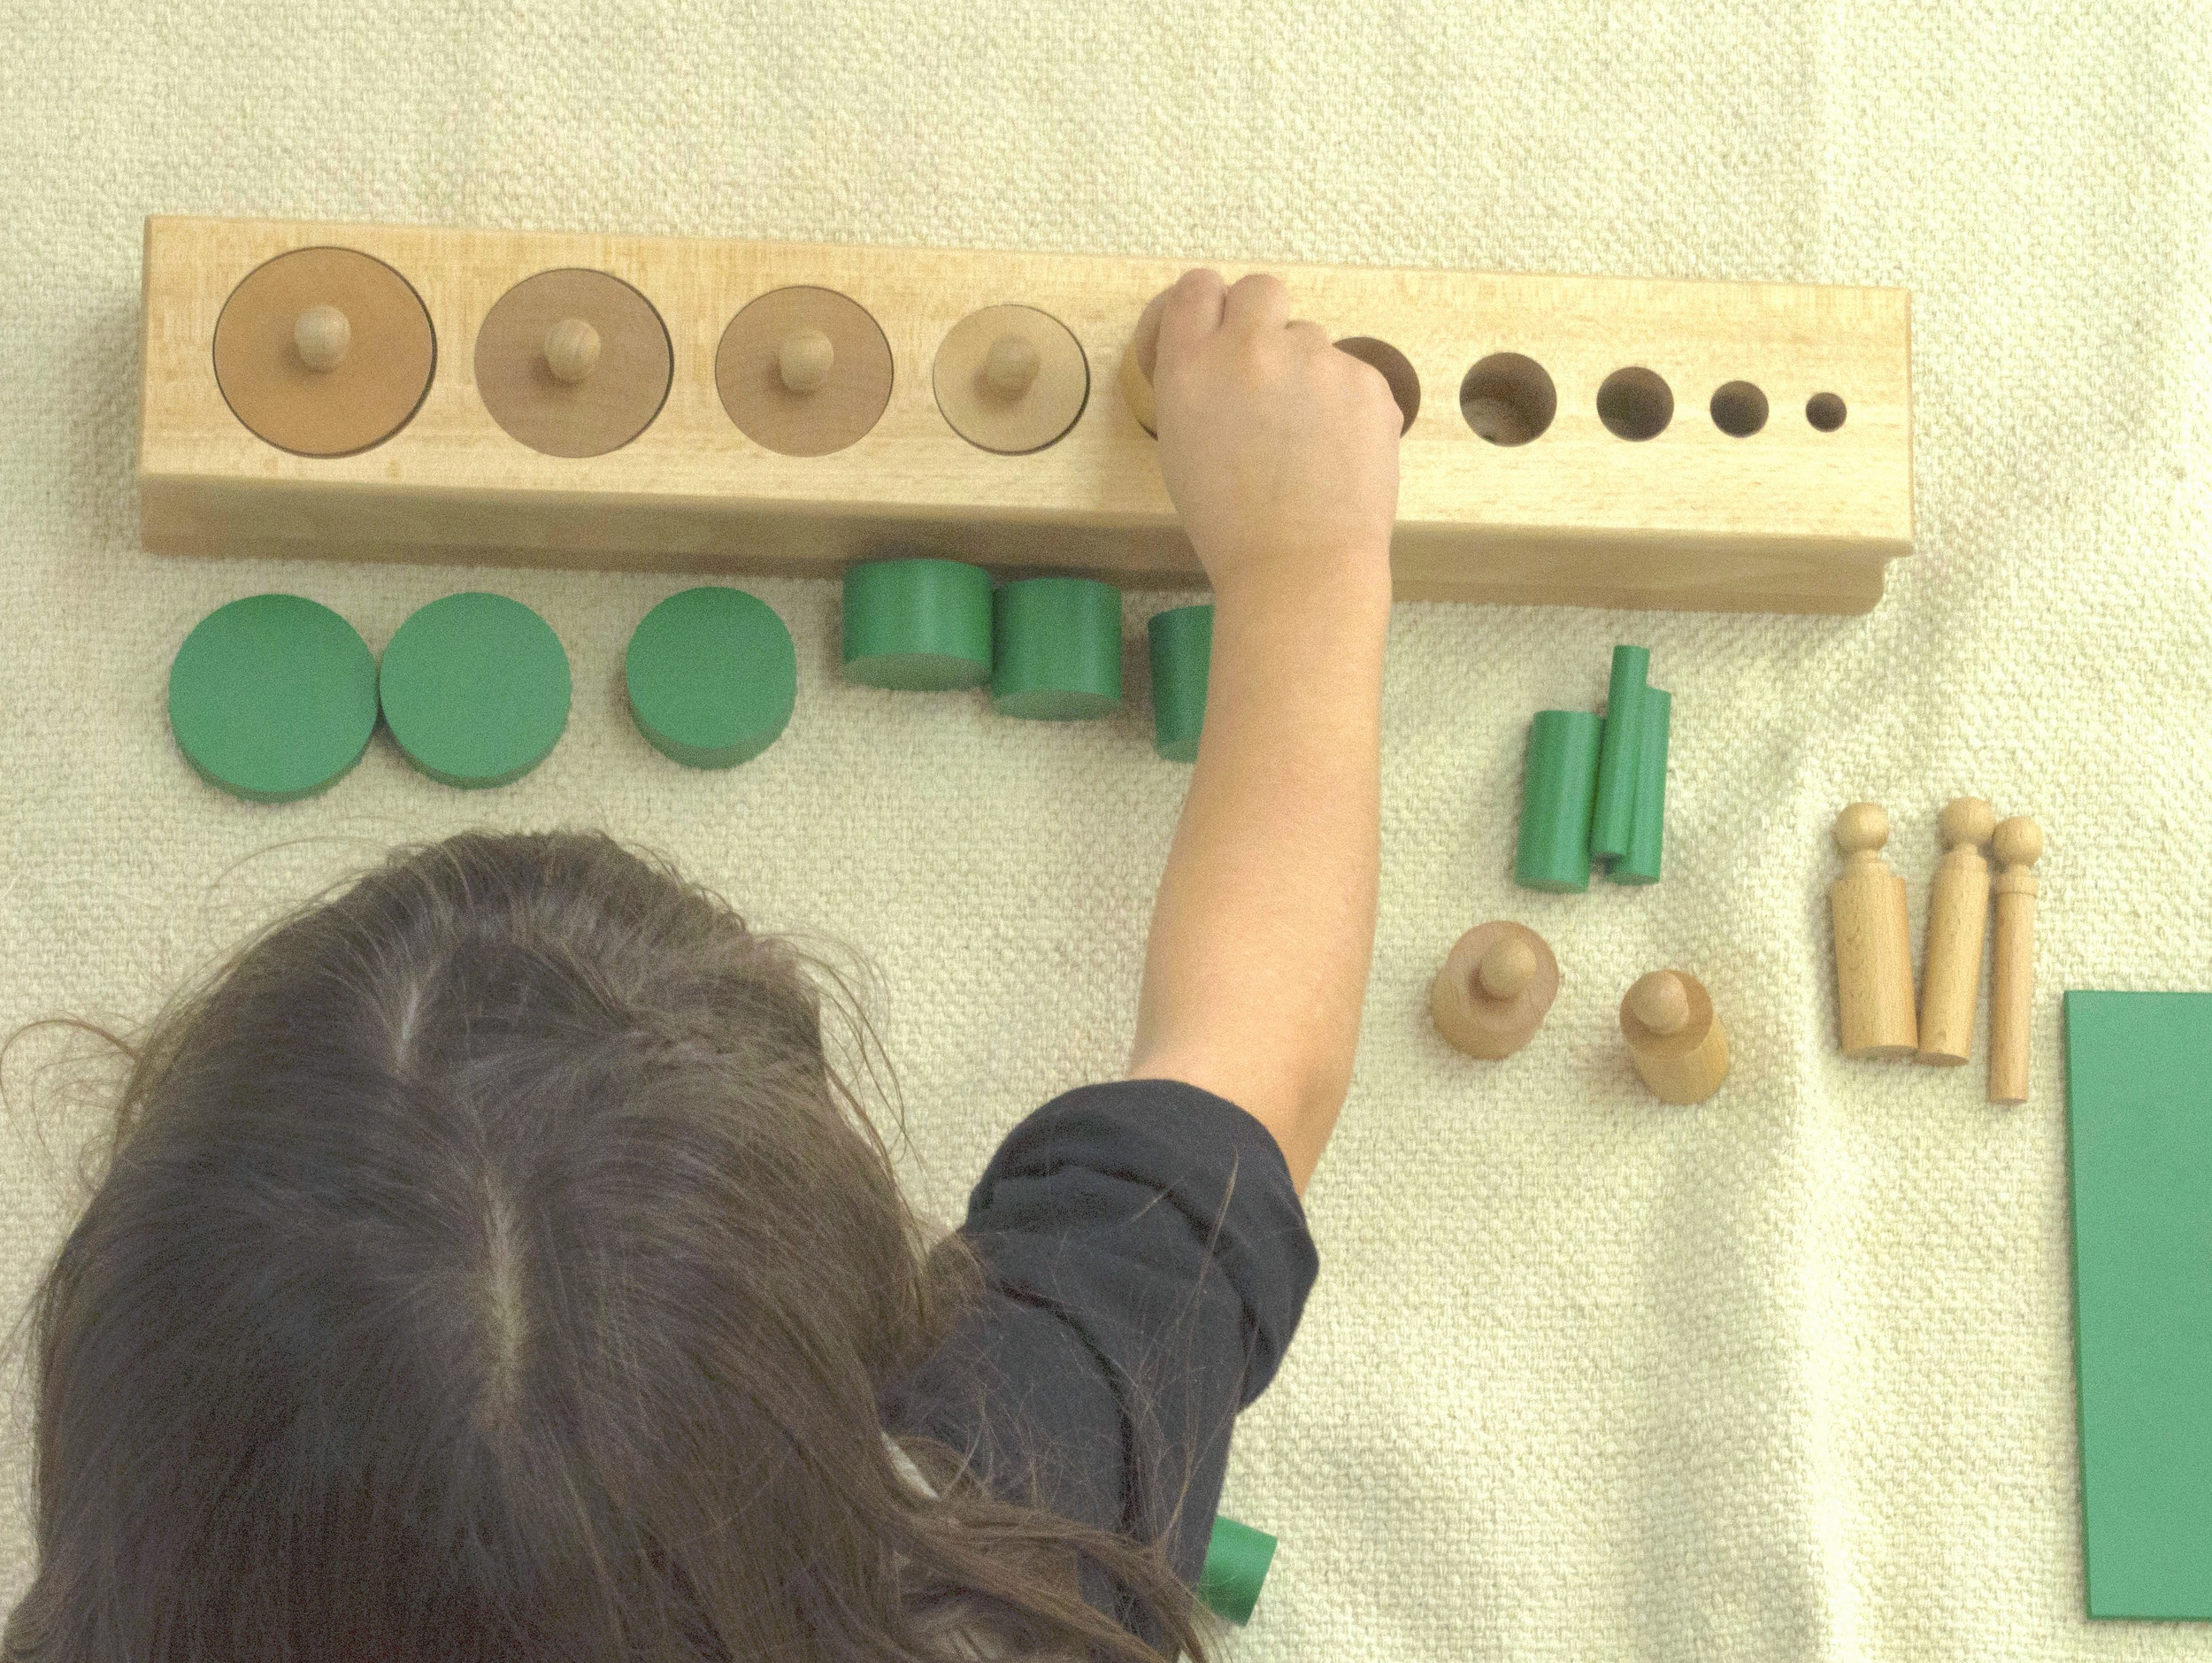 Sensorial - The Sensorial materials enable the child to explore and identify, compare and contrast, recognize similarities and differences and classify sensory impressions in relation to size, color, temperature, texture, scent, taste, pitch, and more.